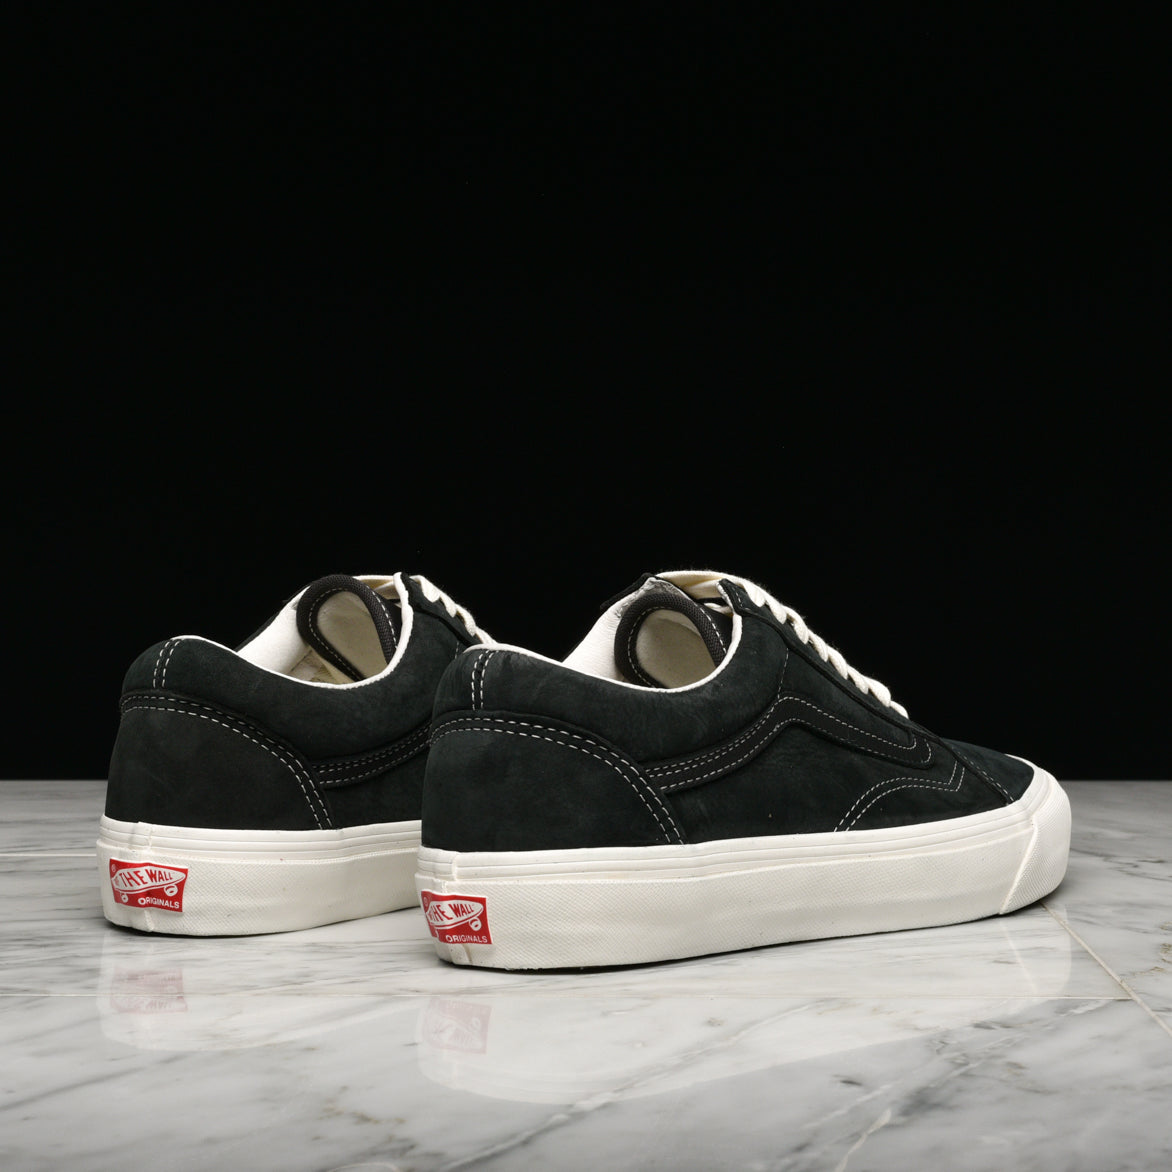 VANS VAULT OG OLD SKOOL LX (NUBUCK / LEATHER) - RAVEN / BLACK